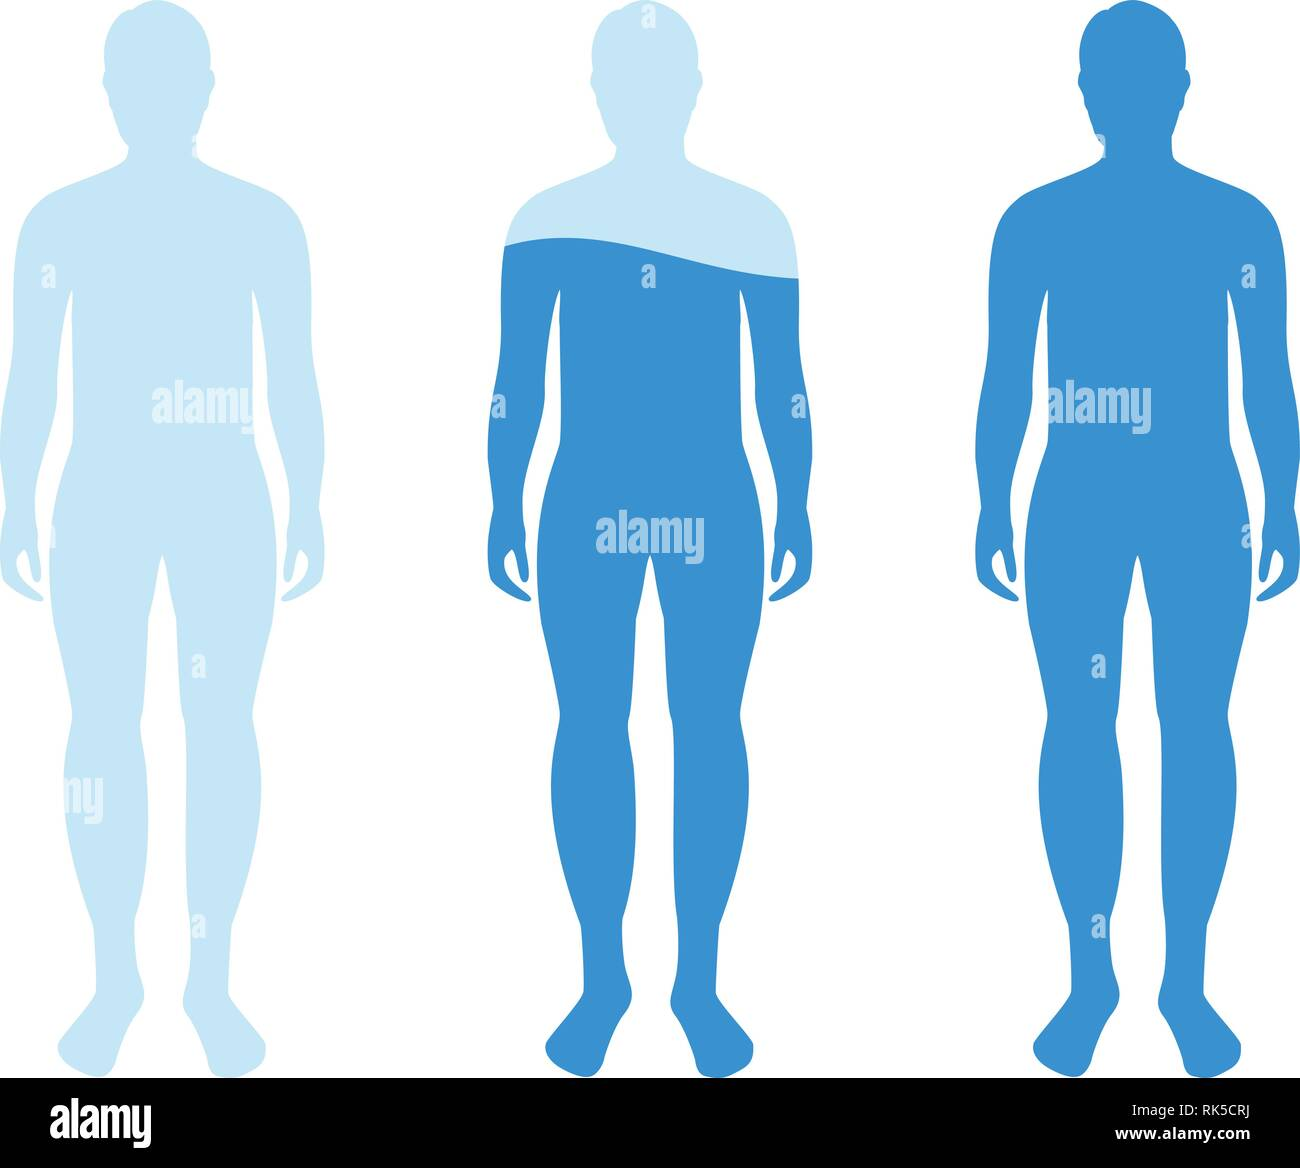 infographic showing water percentage level in human body vector illustration water balance stock vector image art alamy https www alamy com infographic showing water percentage level in human body vector illustration water balance image235533078 html